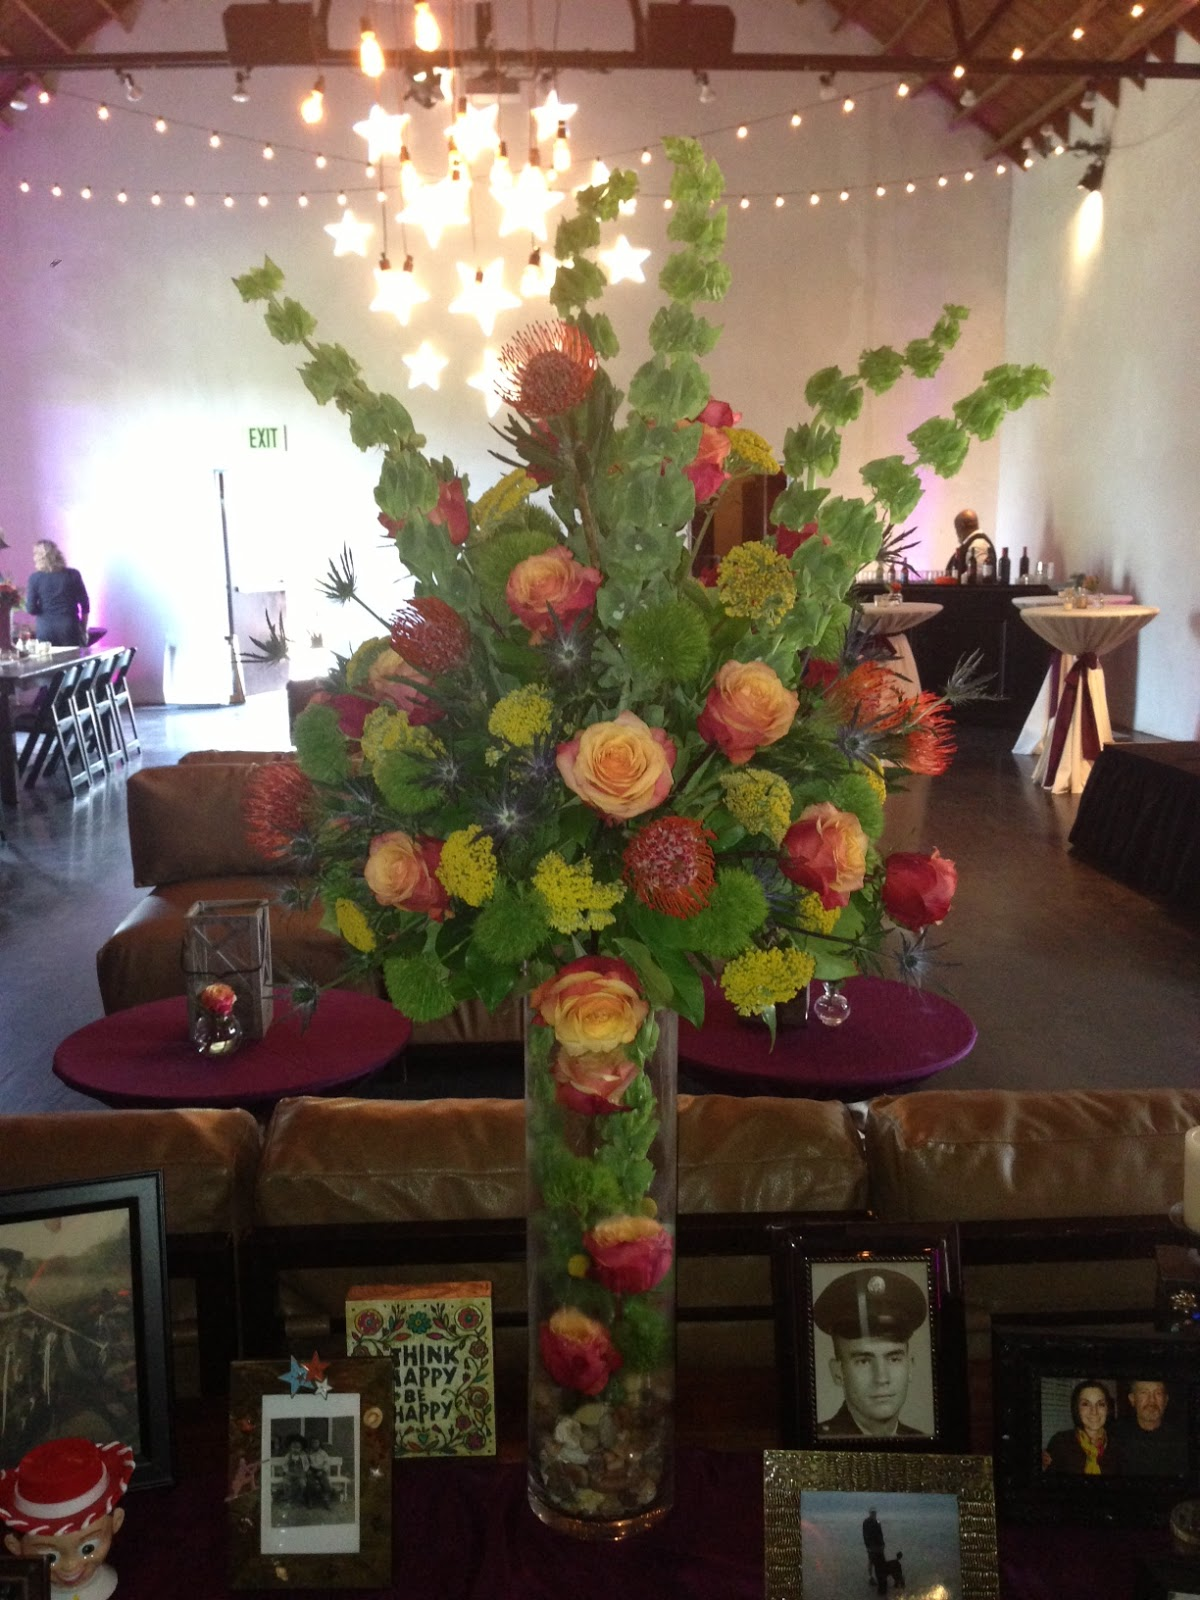 Table Decoration Ideas For Retirement Party used this as a centerpiece at a co workers retirement party using Green Ball Dianthus Pincushion Protea For The Cactus Element And Yarrow In The Large Entryway Arrangement And Billy Balls For The Table Centerpieces